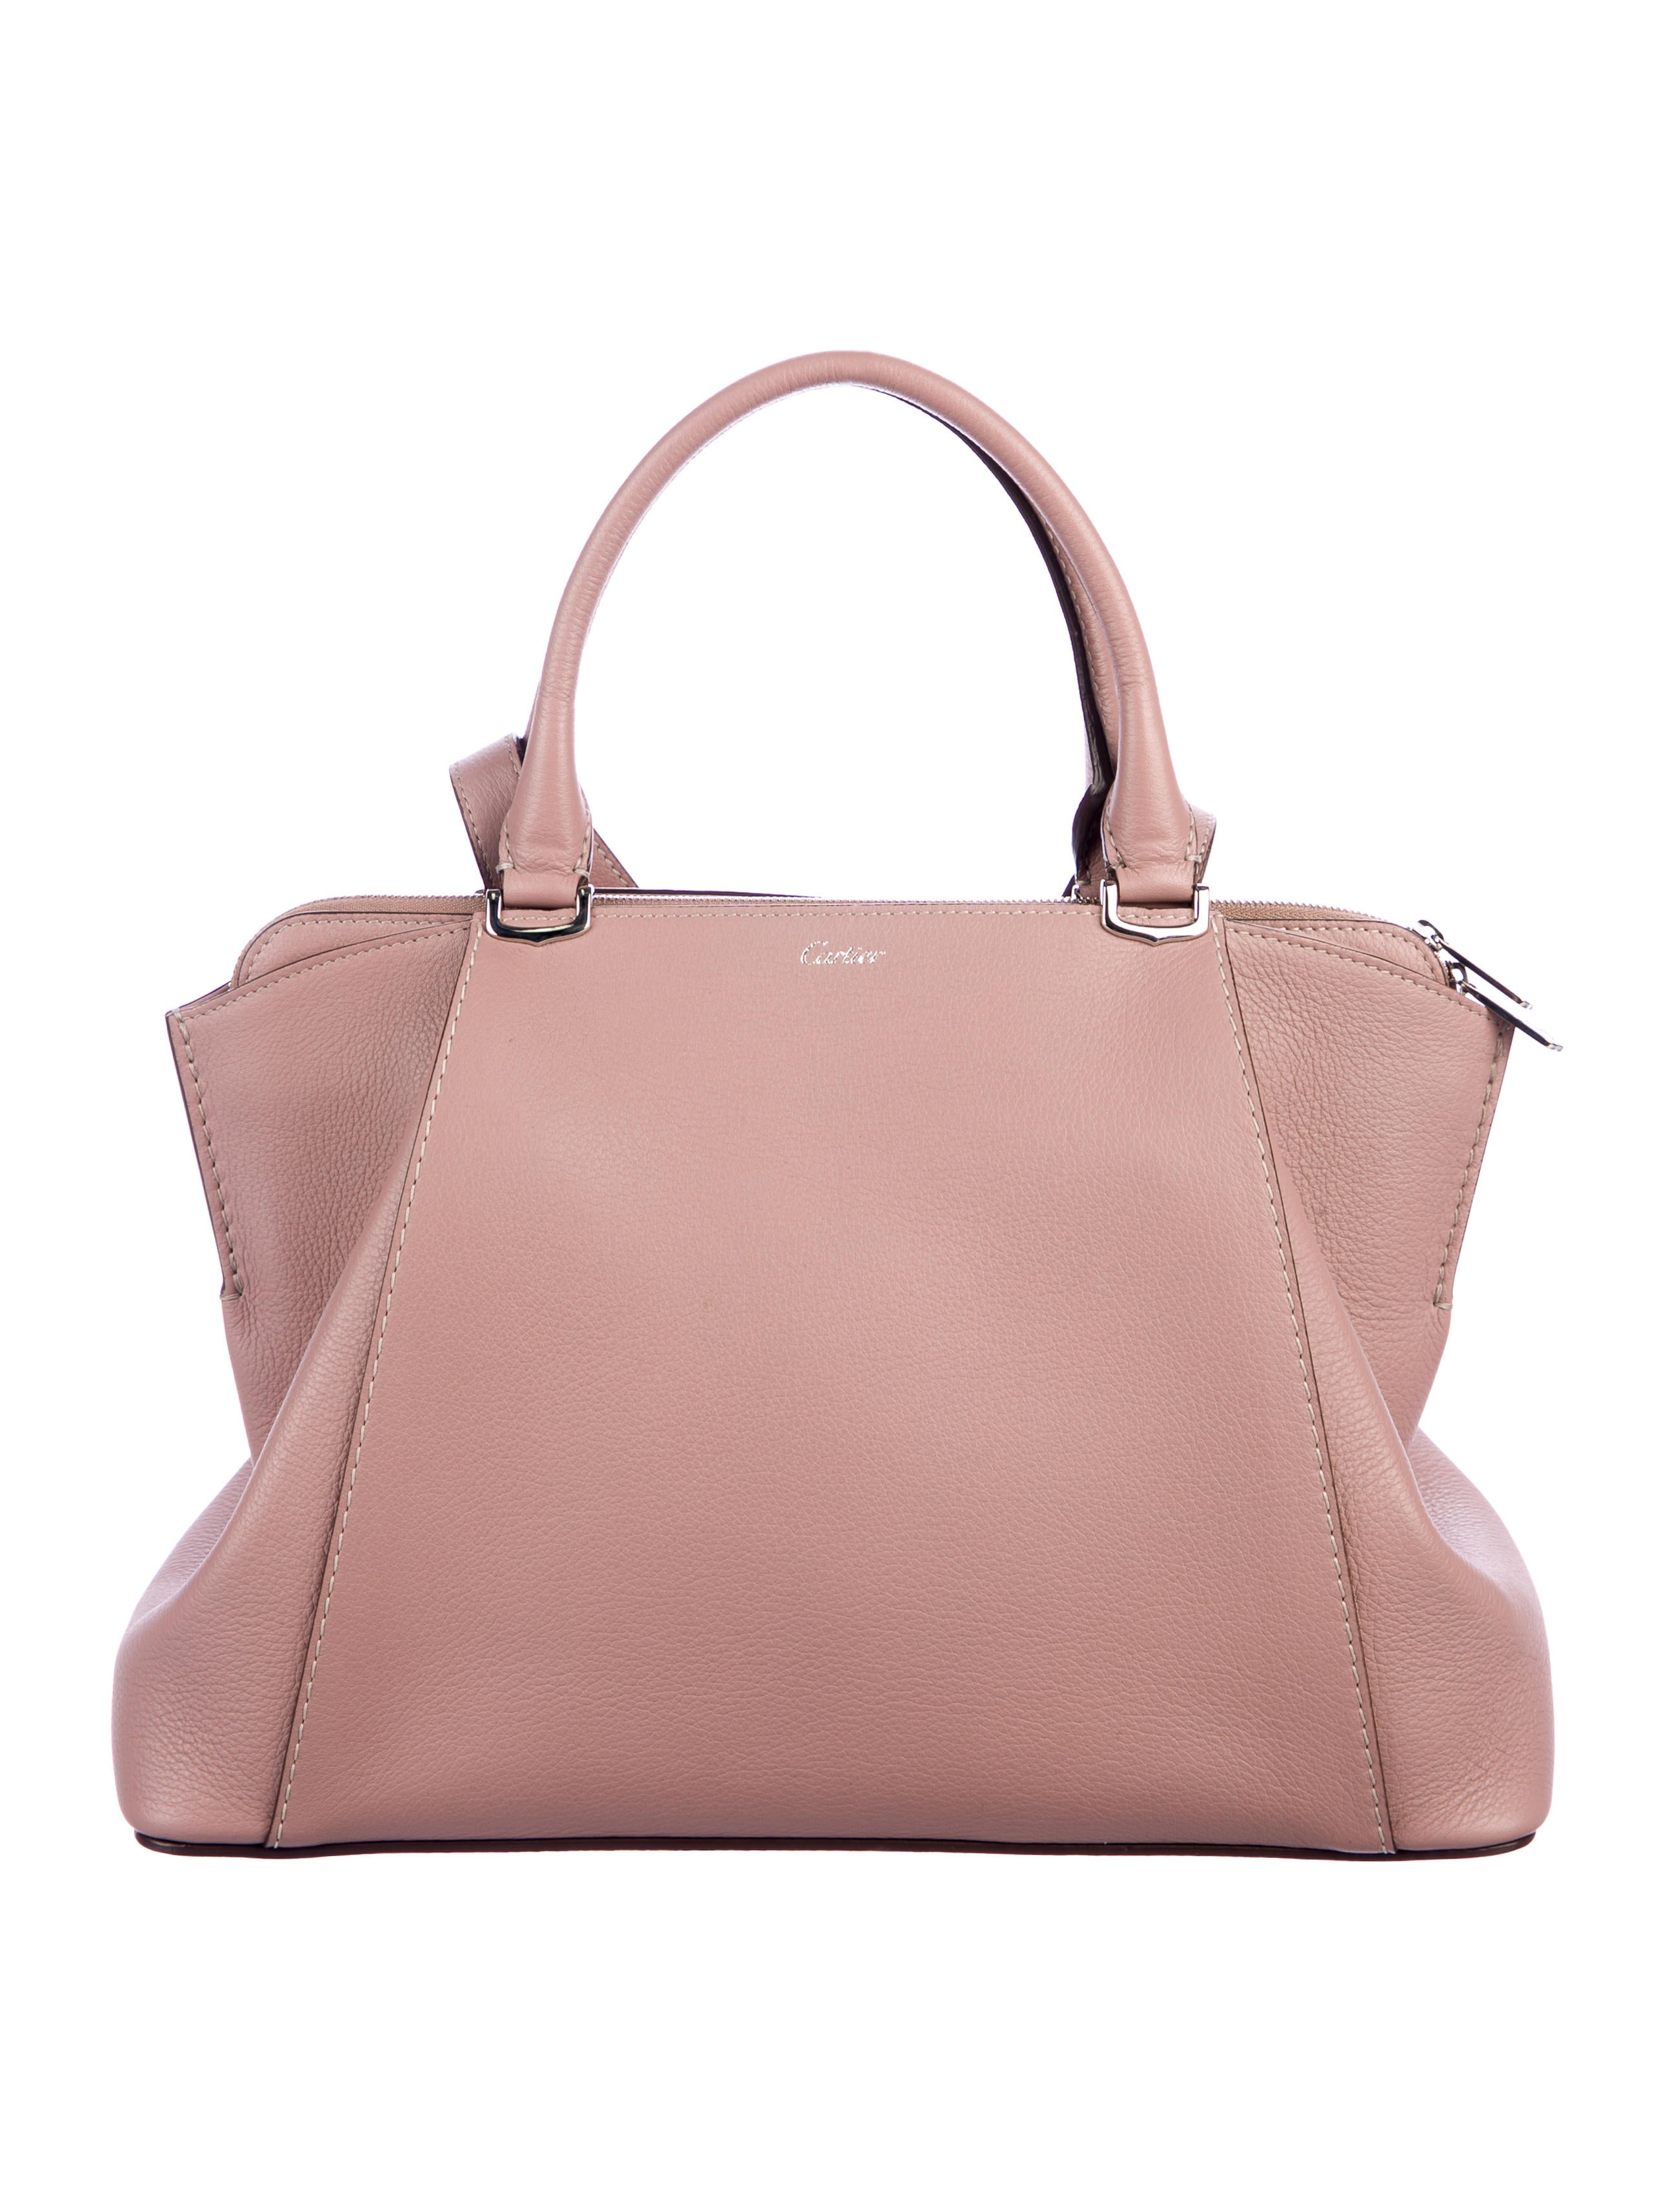 Best choose cartier bags for women recommendations dress in spring in 2019